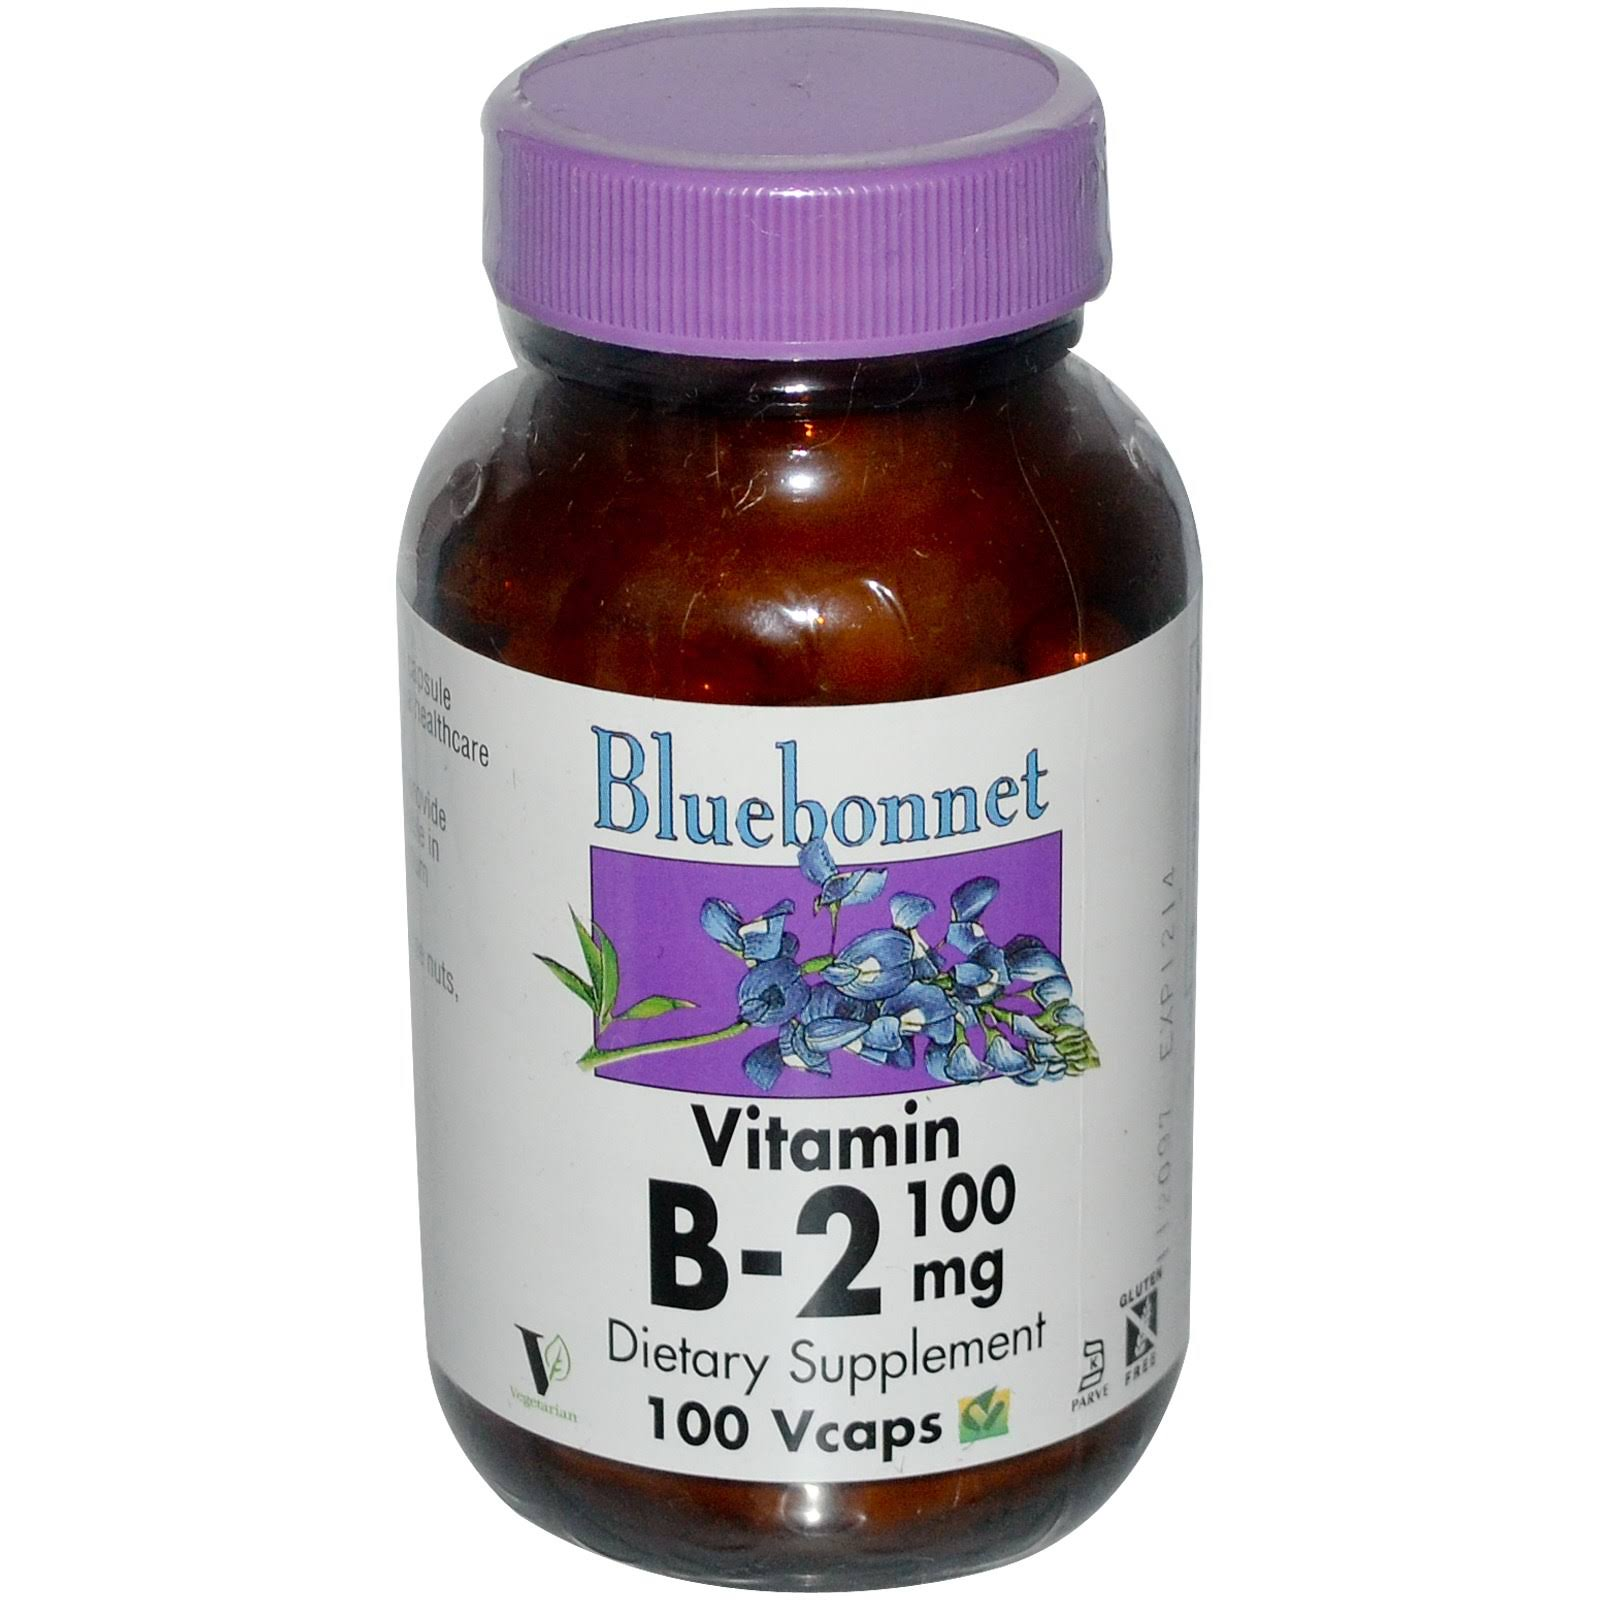 Bluebonnet - Vitamin B-2 100 mg 100 vcaps